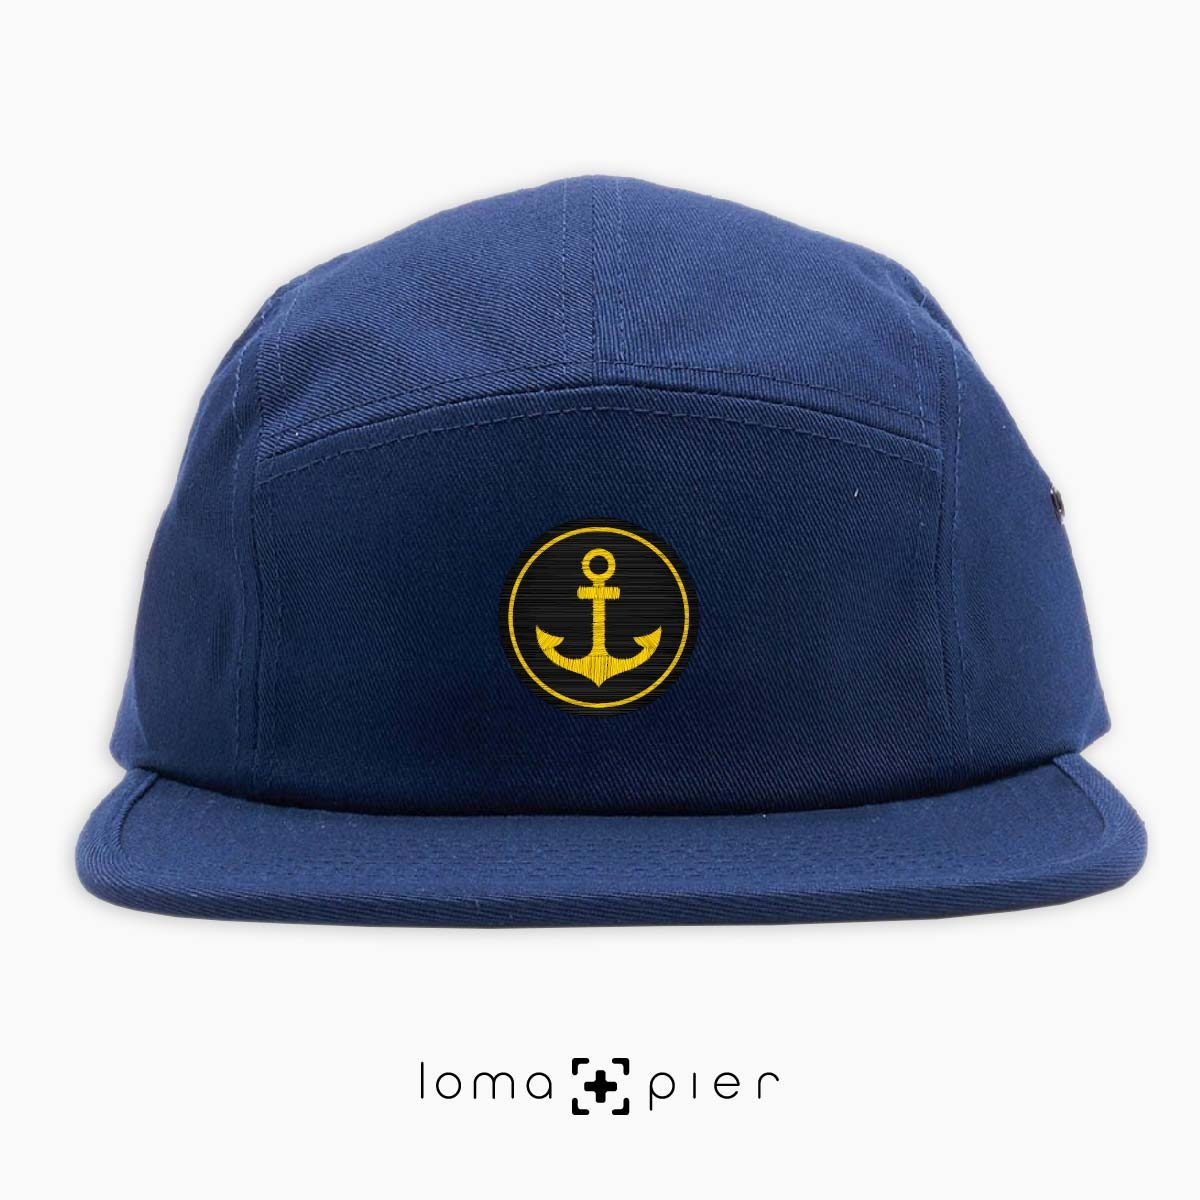 ANCHOR icon 5-panel hat in navy blue by loma+pier hat store